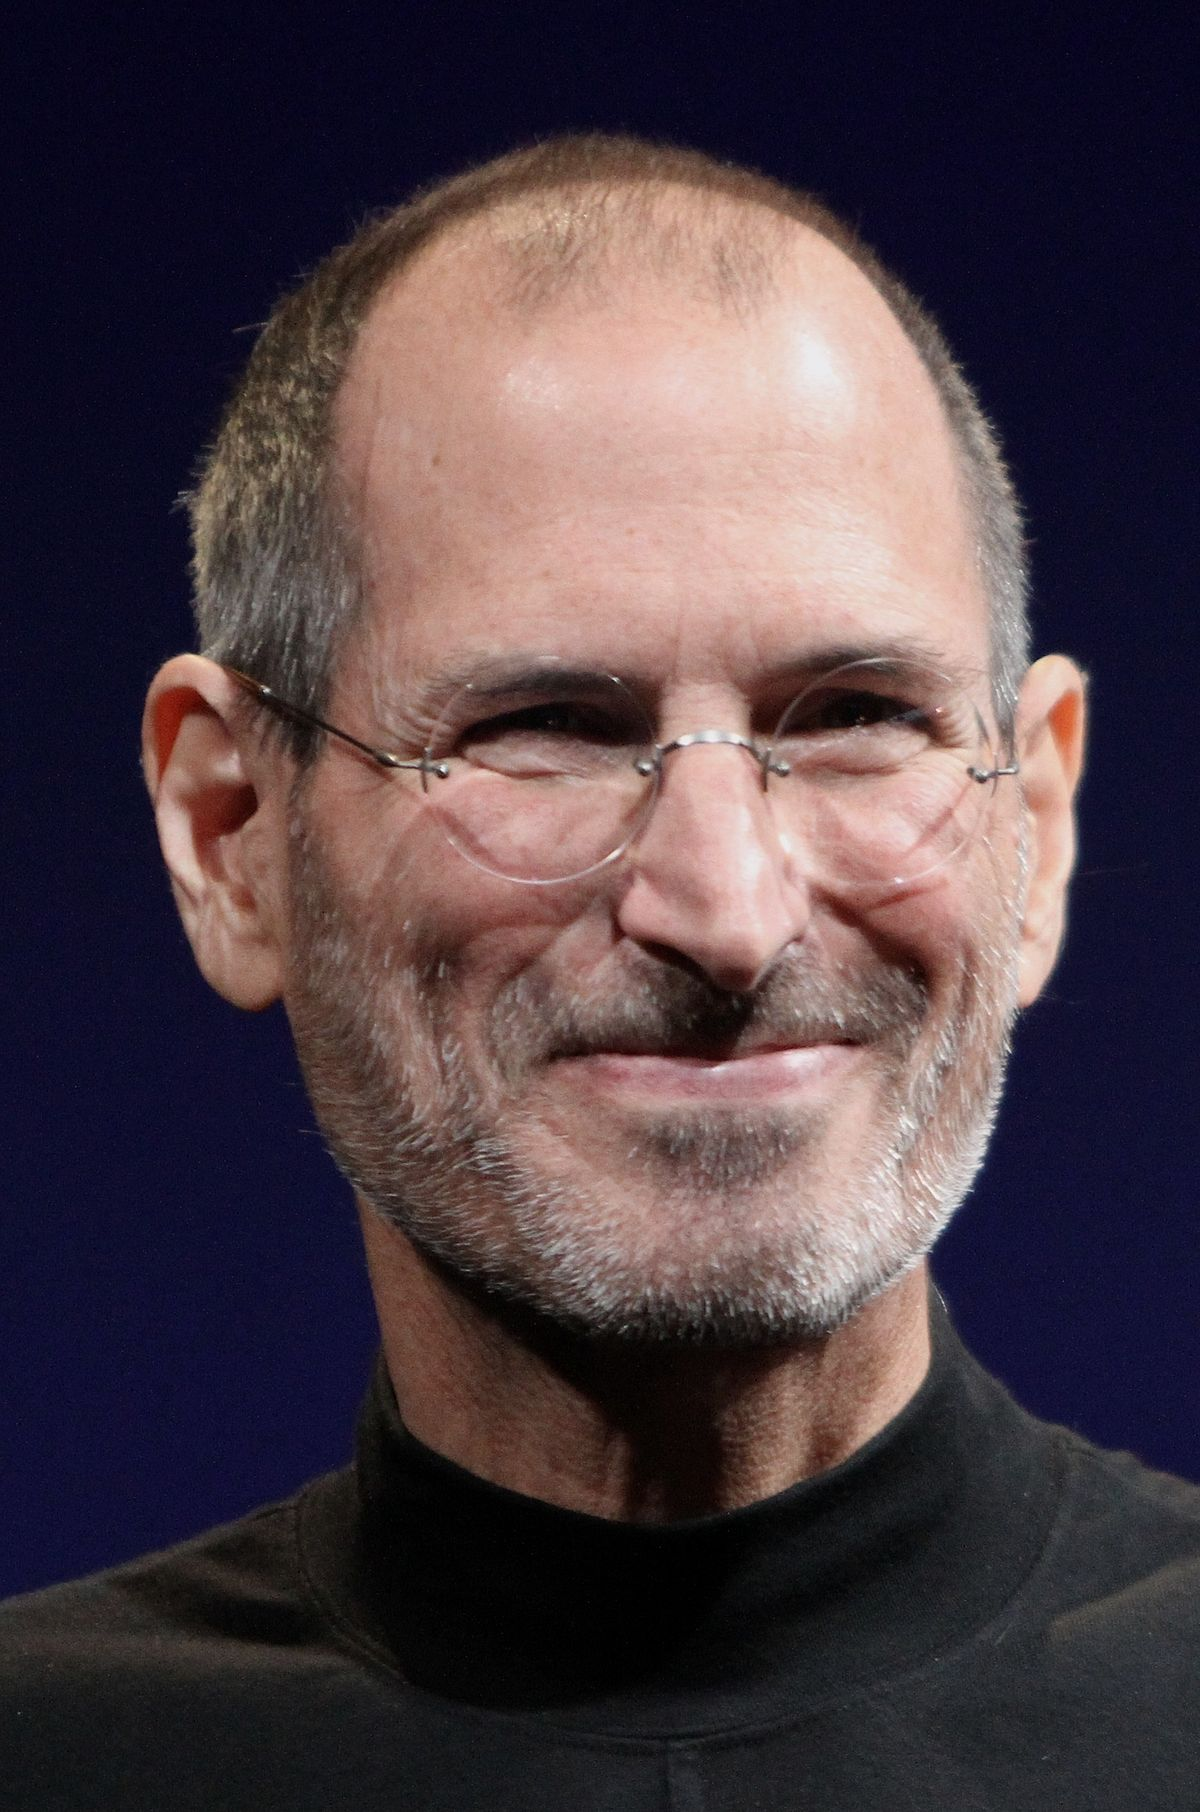 Steve Jobs Headshot 2010